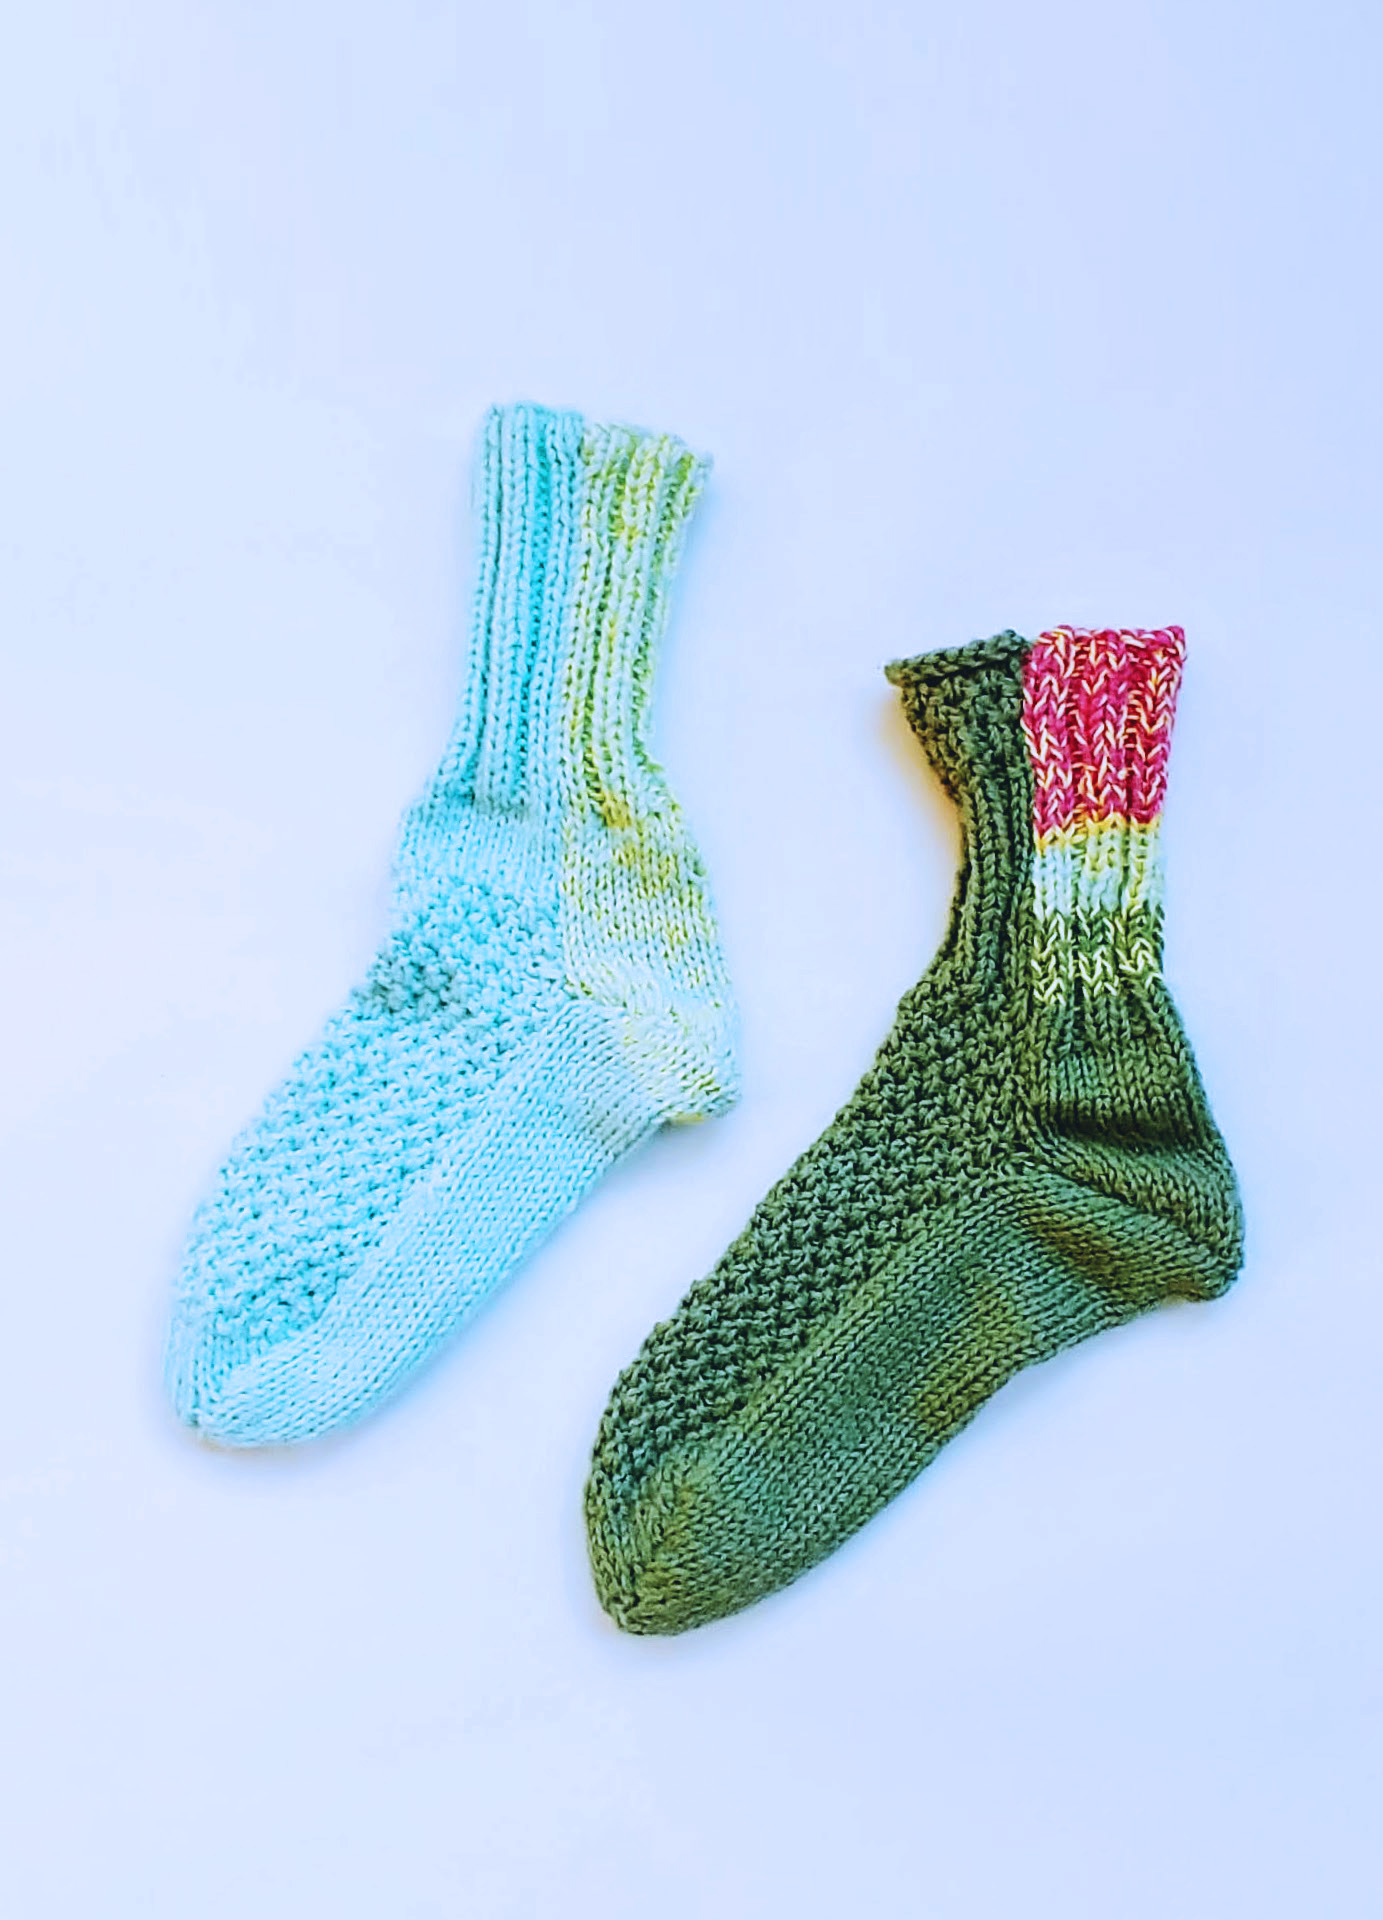 Two Knitted Socks - Blue and Green